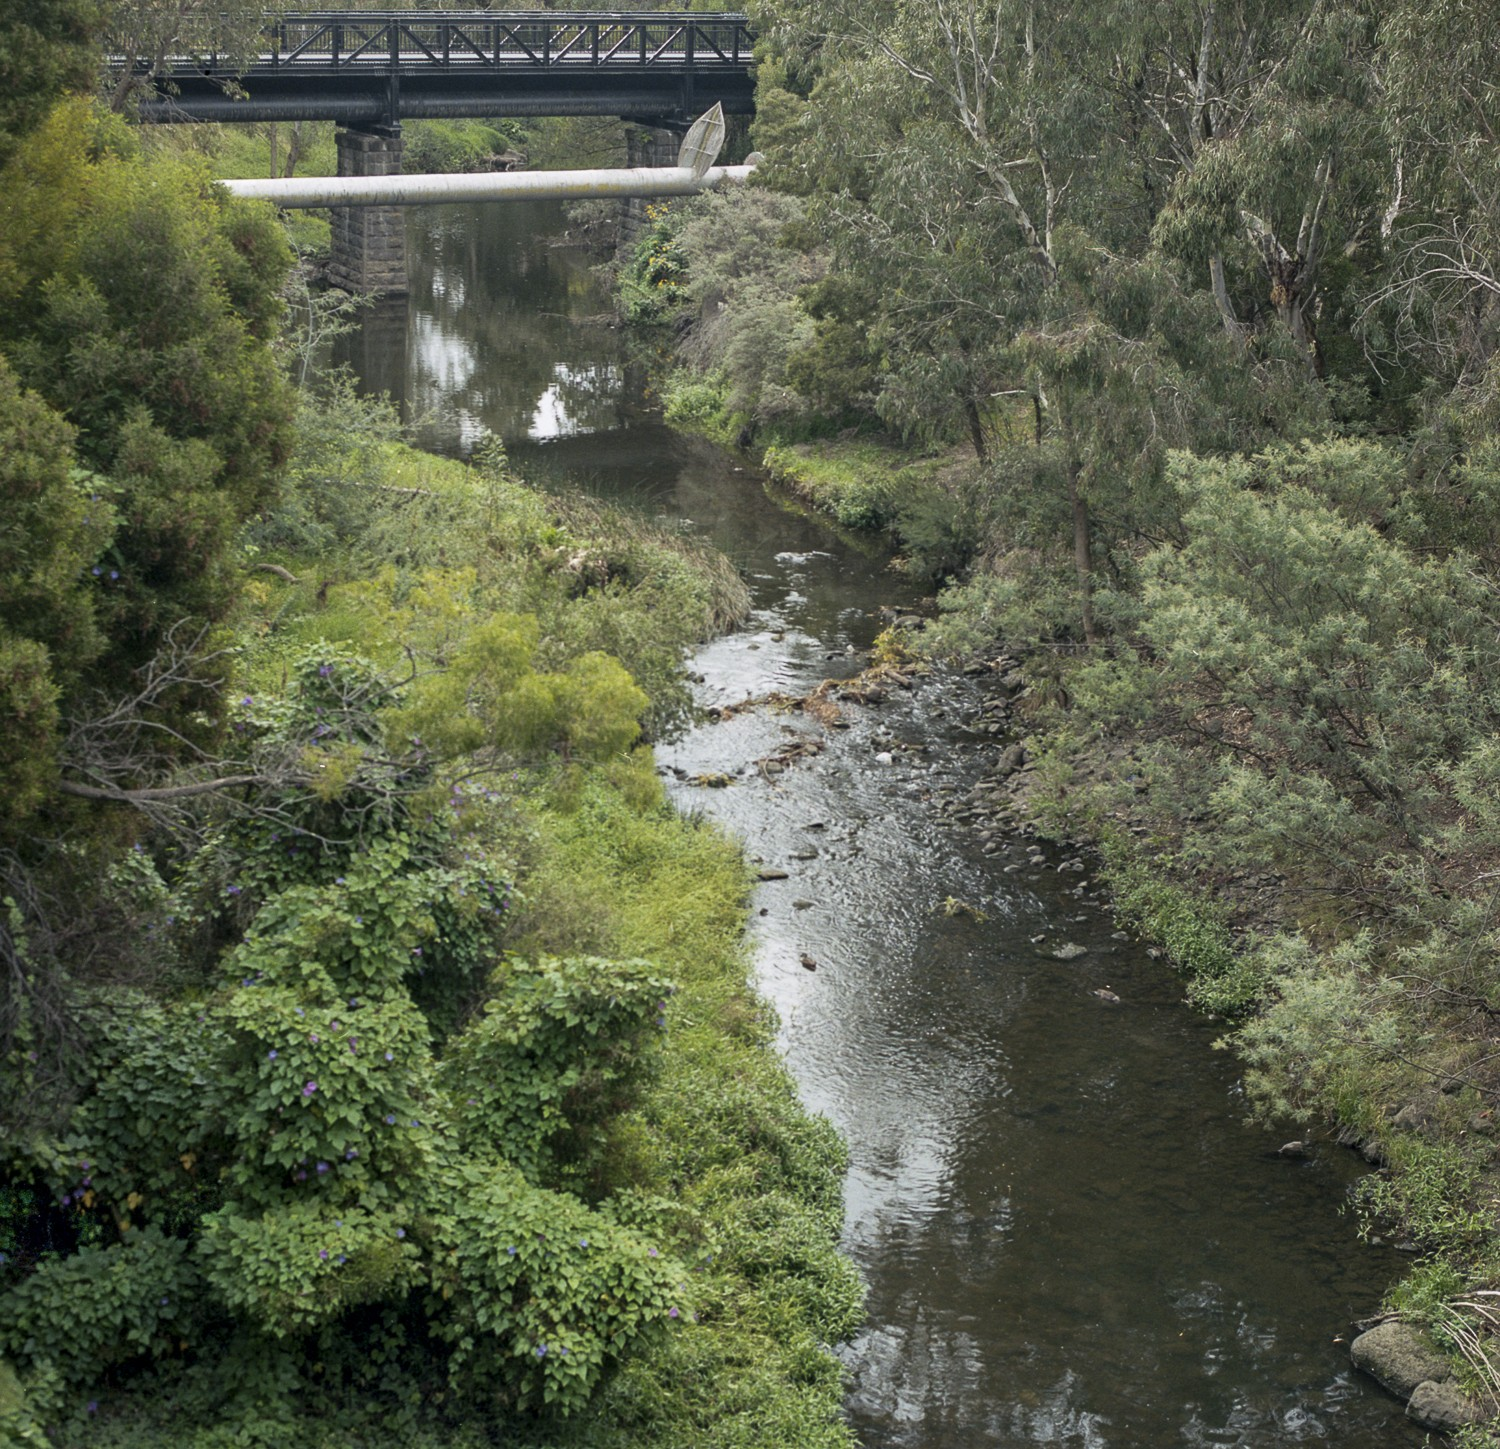 Merri Creek, Northcote, Melbourne